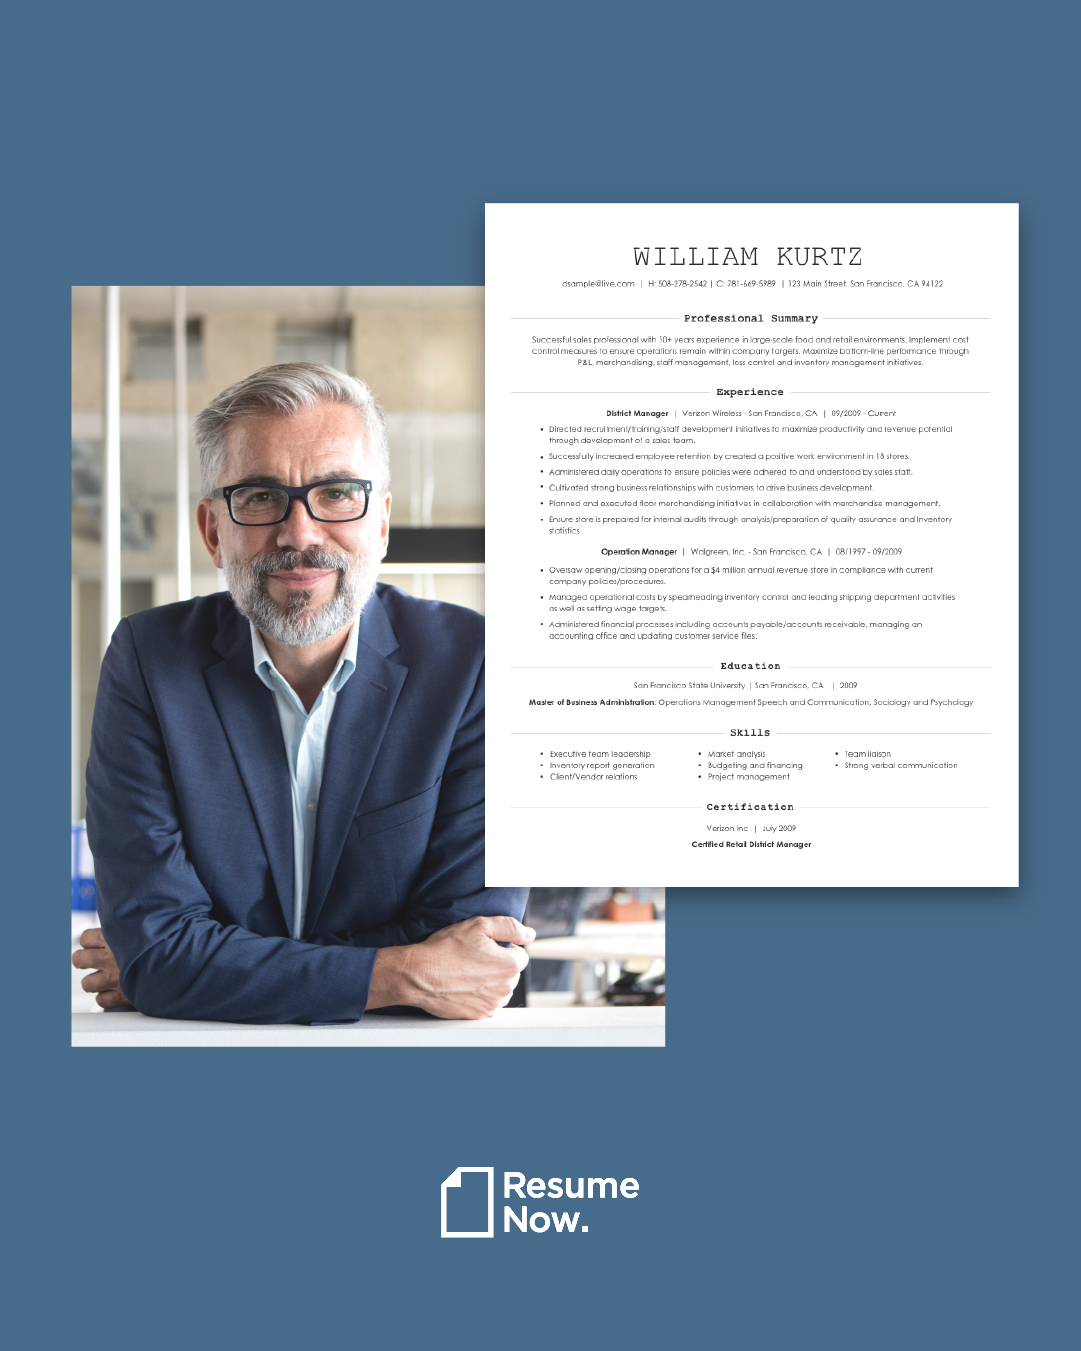 Build your resume with Resumenow! in 2020 Resume